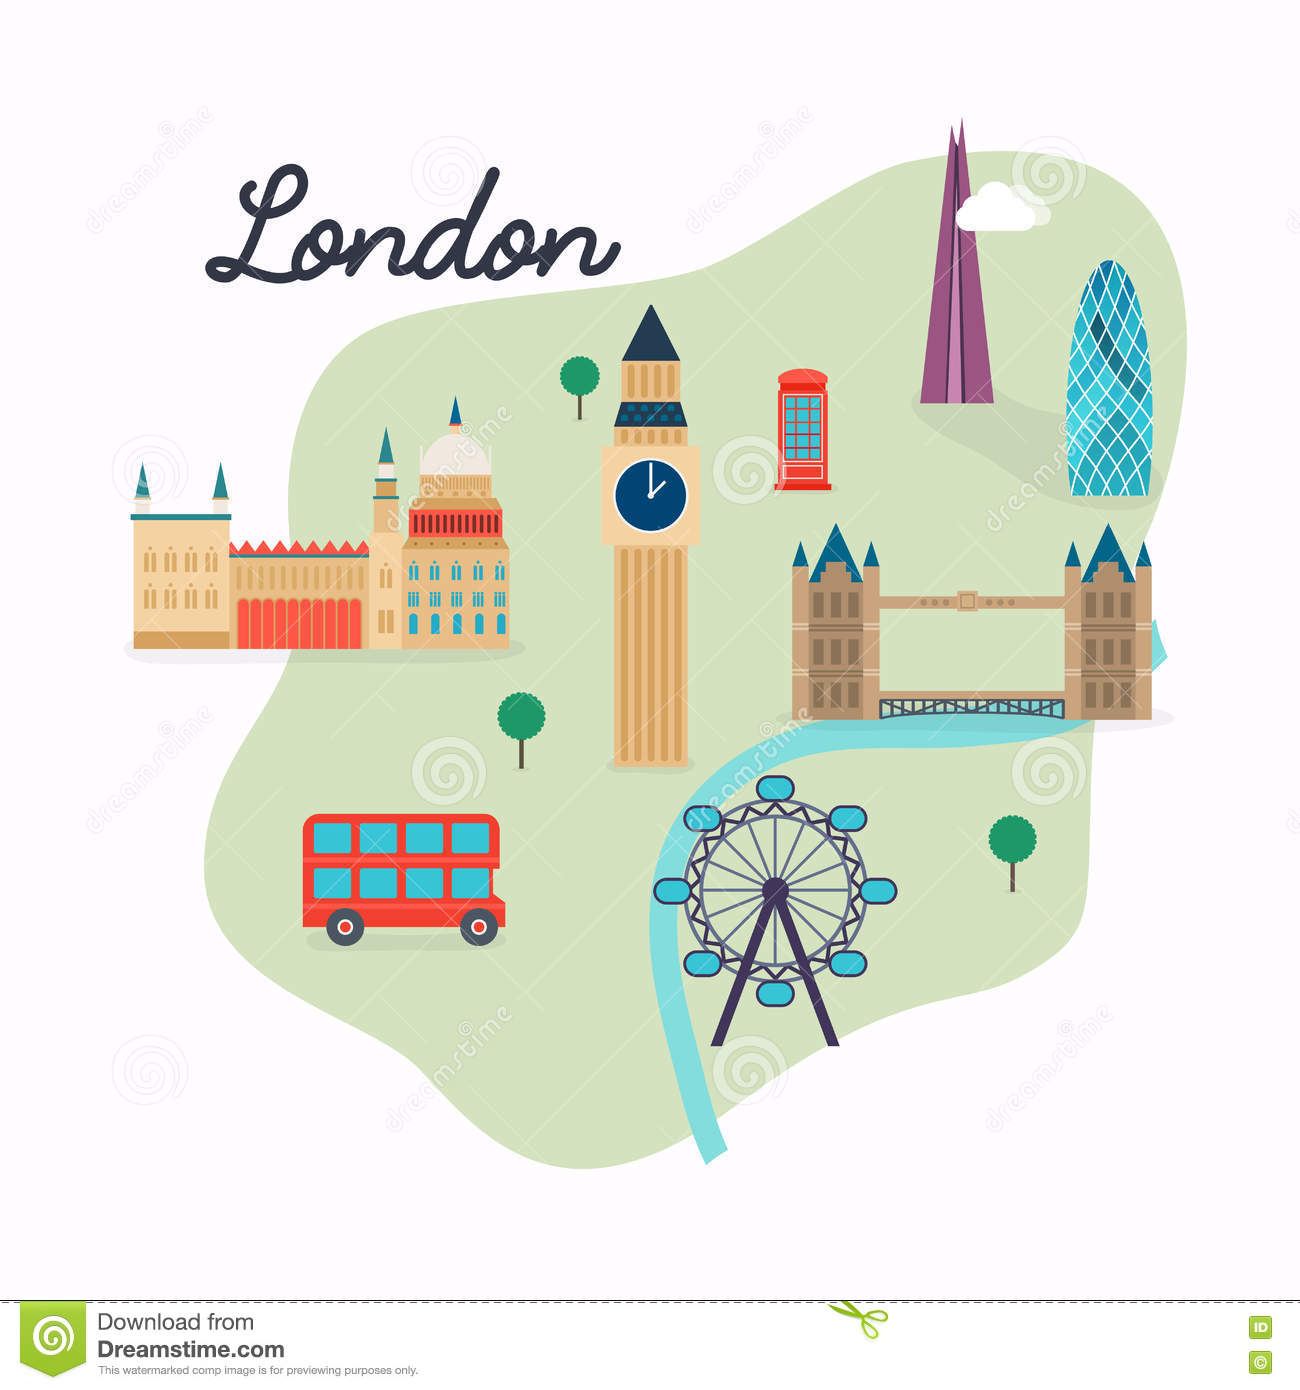 London Uk Transit Map.London Travel Map And Vector Landscape Of Buildings And Famous